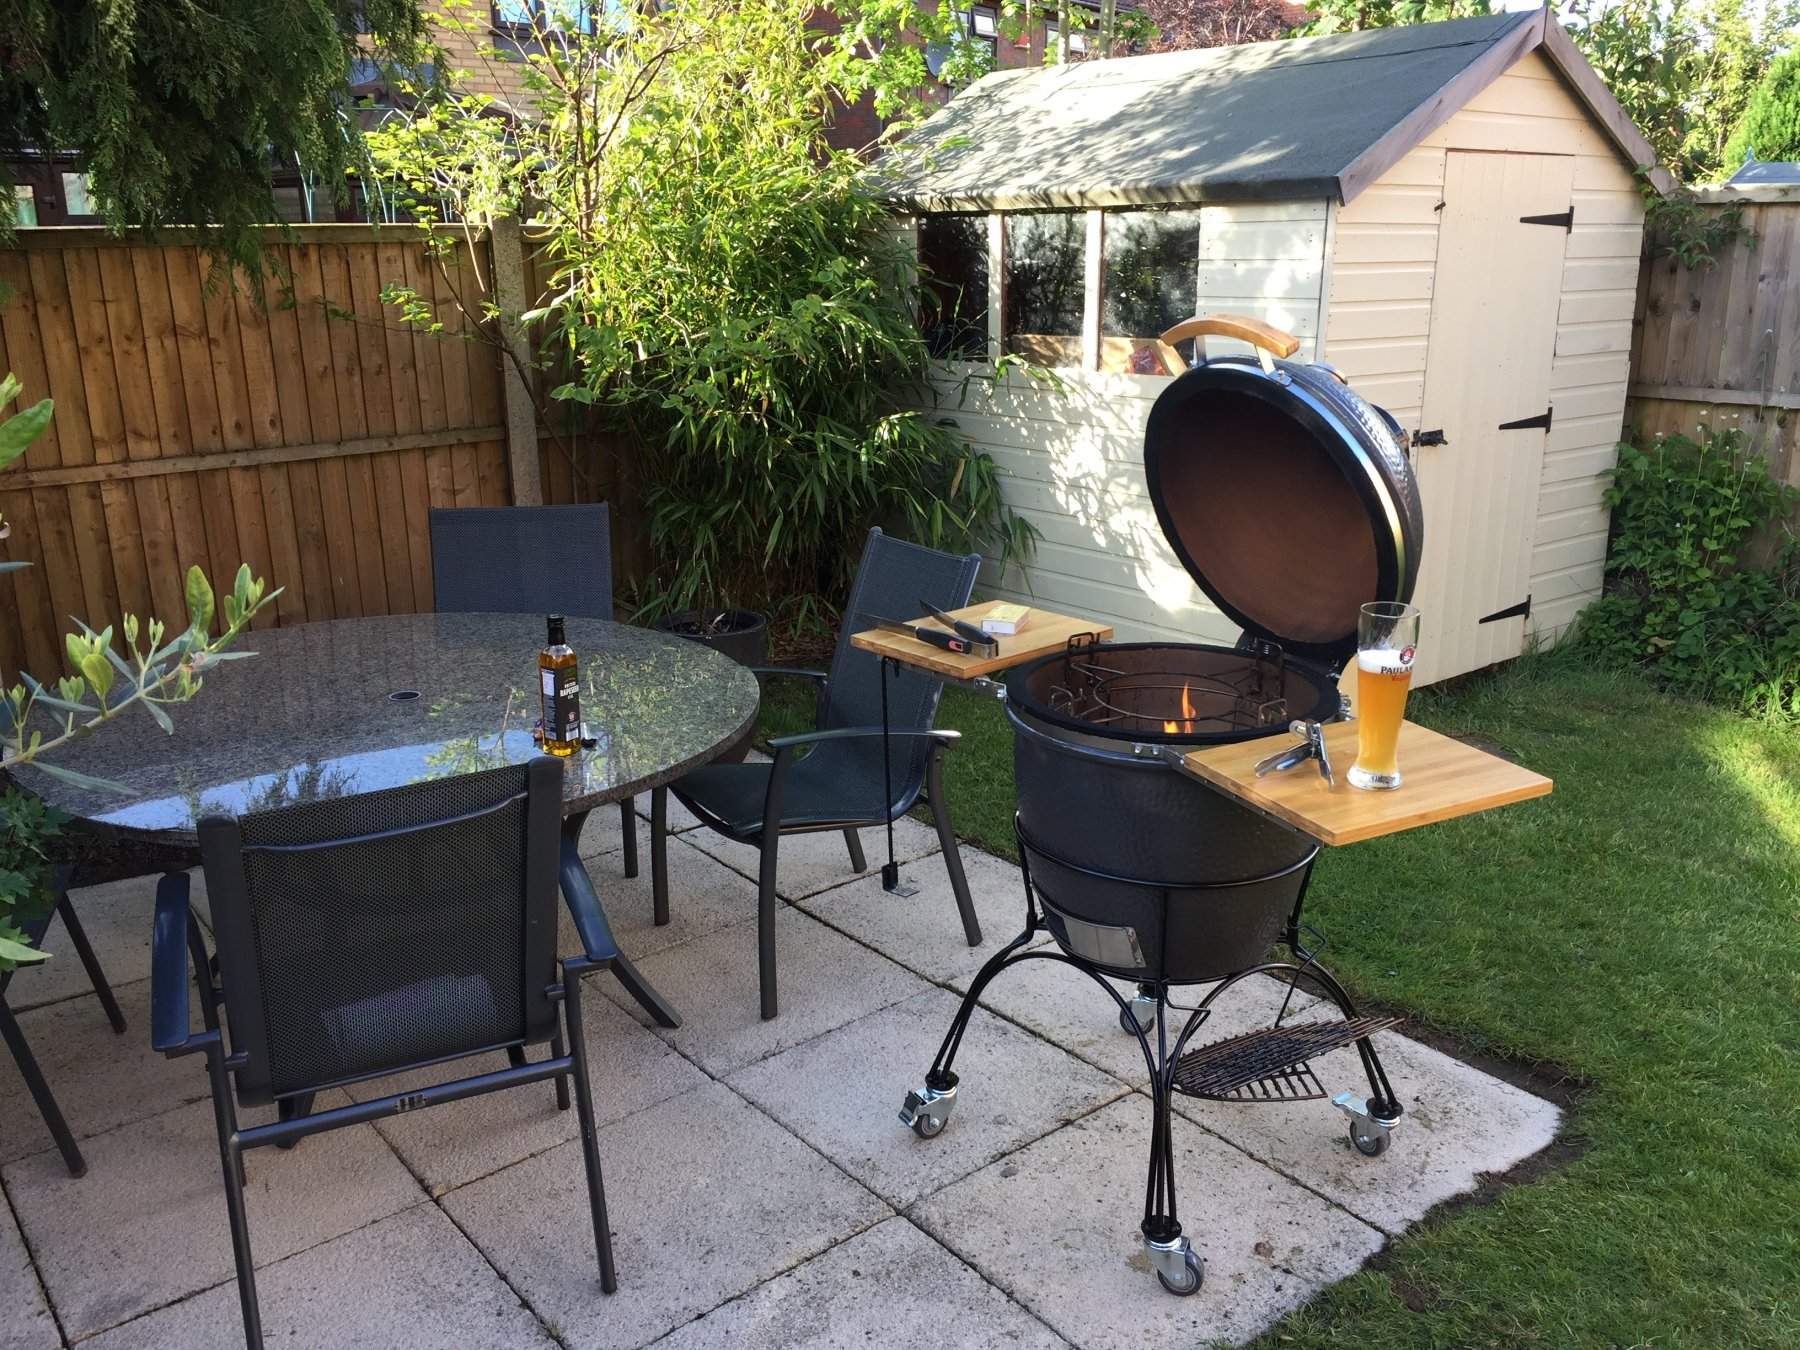 Wild Goose 18 Inch Kamado With Cart